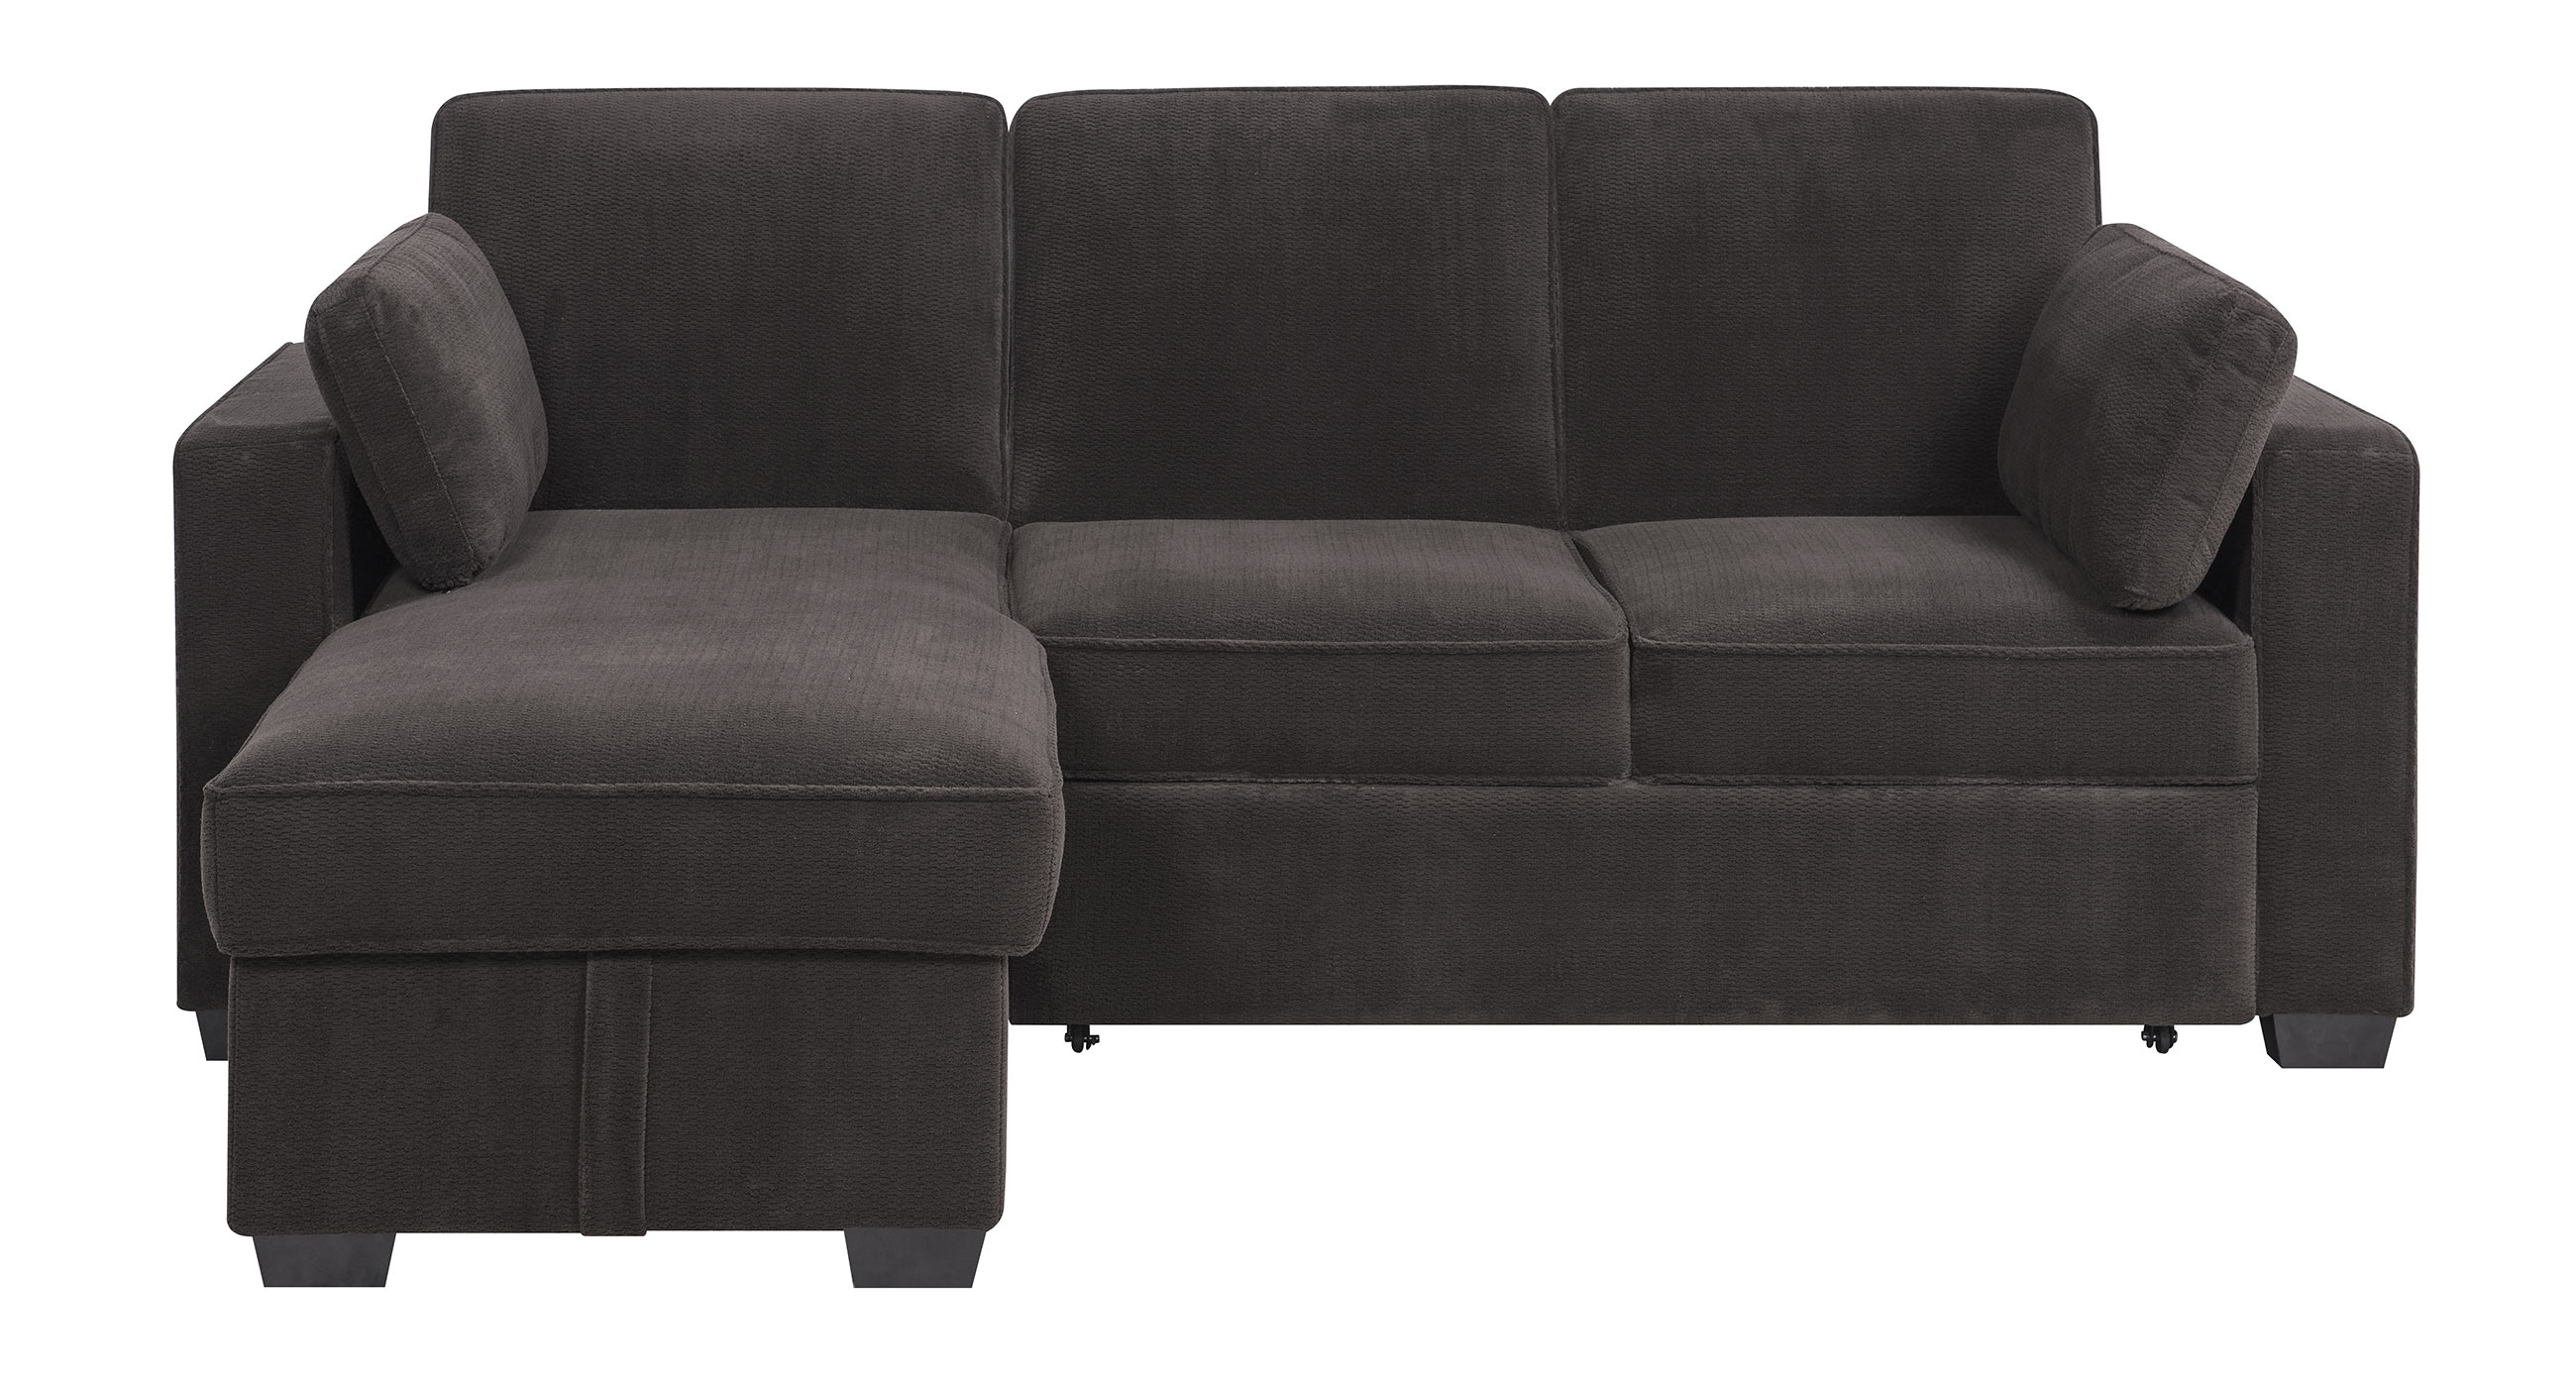 Chaela Sectional Convertible Sofa Dark Grey by Serta Lifestyle